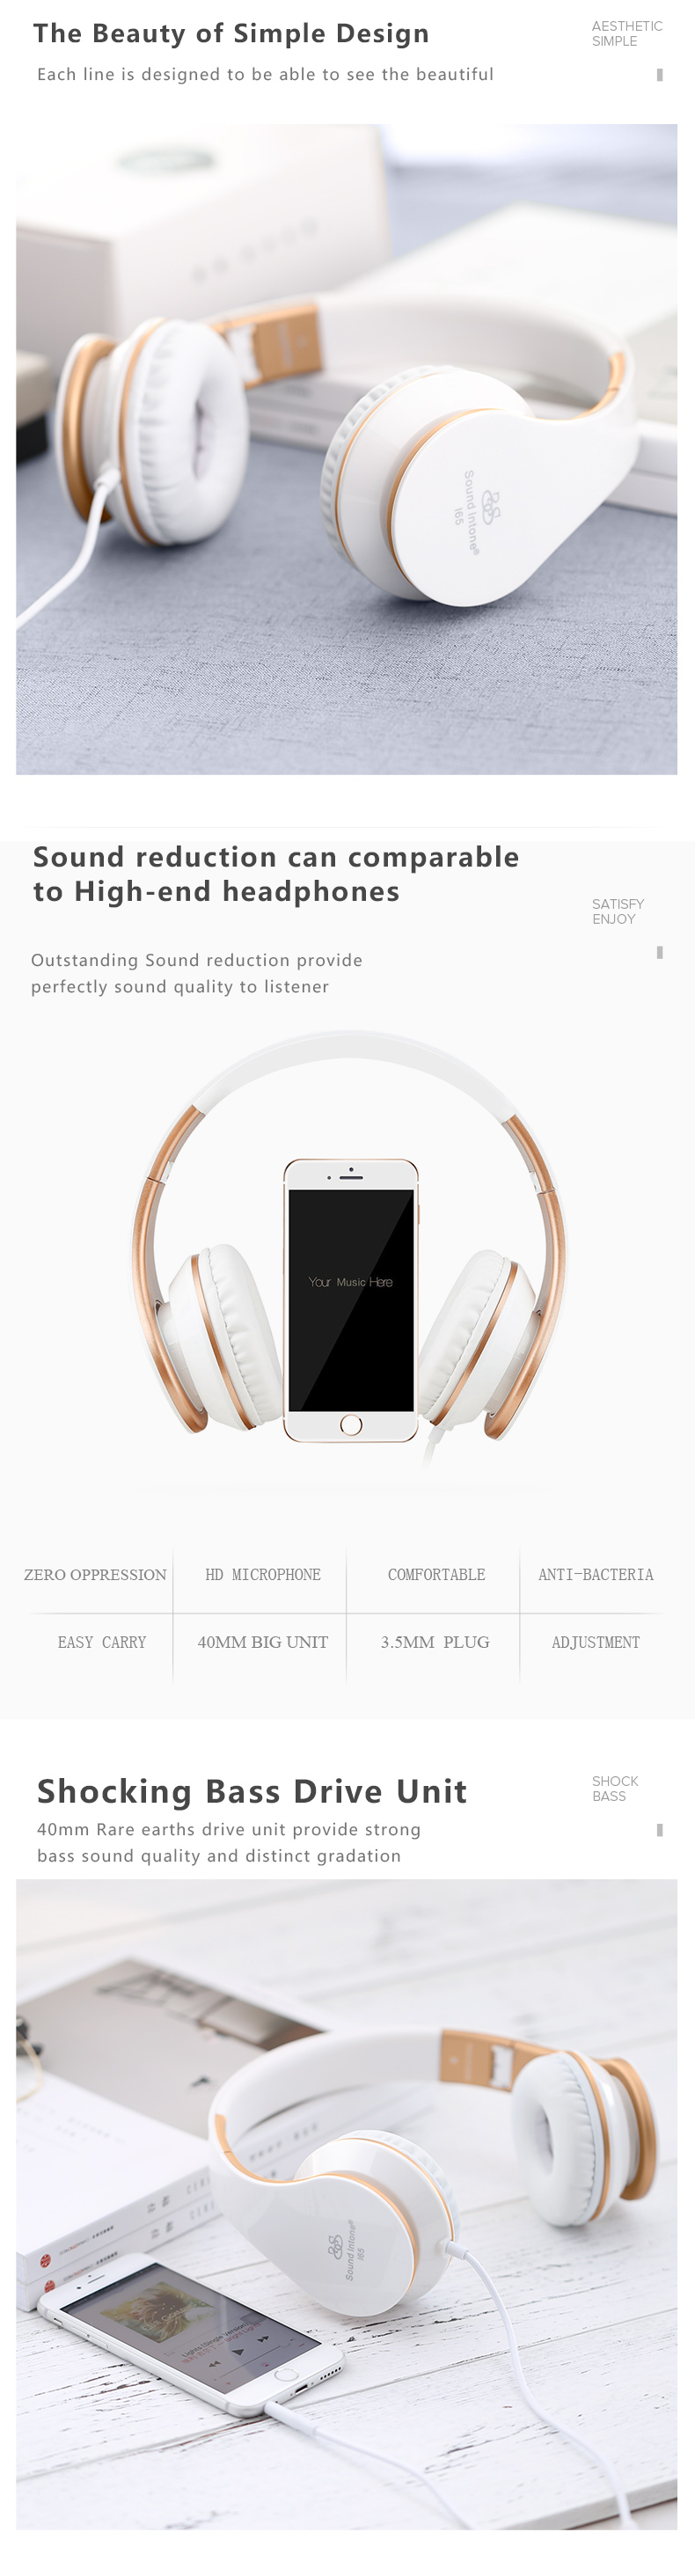 Sound Intone Foldable Headphones With Microphone Volume Control Over E Headphone Mic And Wiring Diagram Resistance 32 Button No Model Number I65 Support App Yes Plug Type Line Package Use Portable Media Player Connectors 35mm Aux